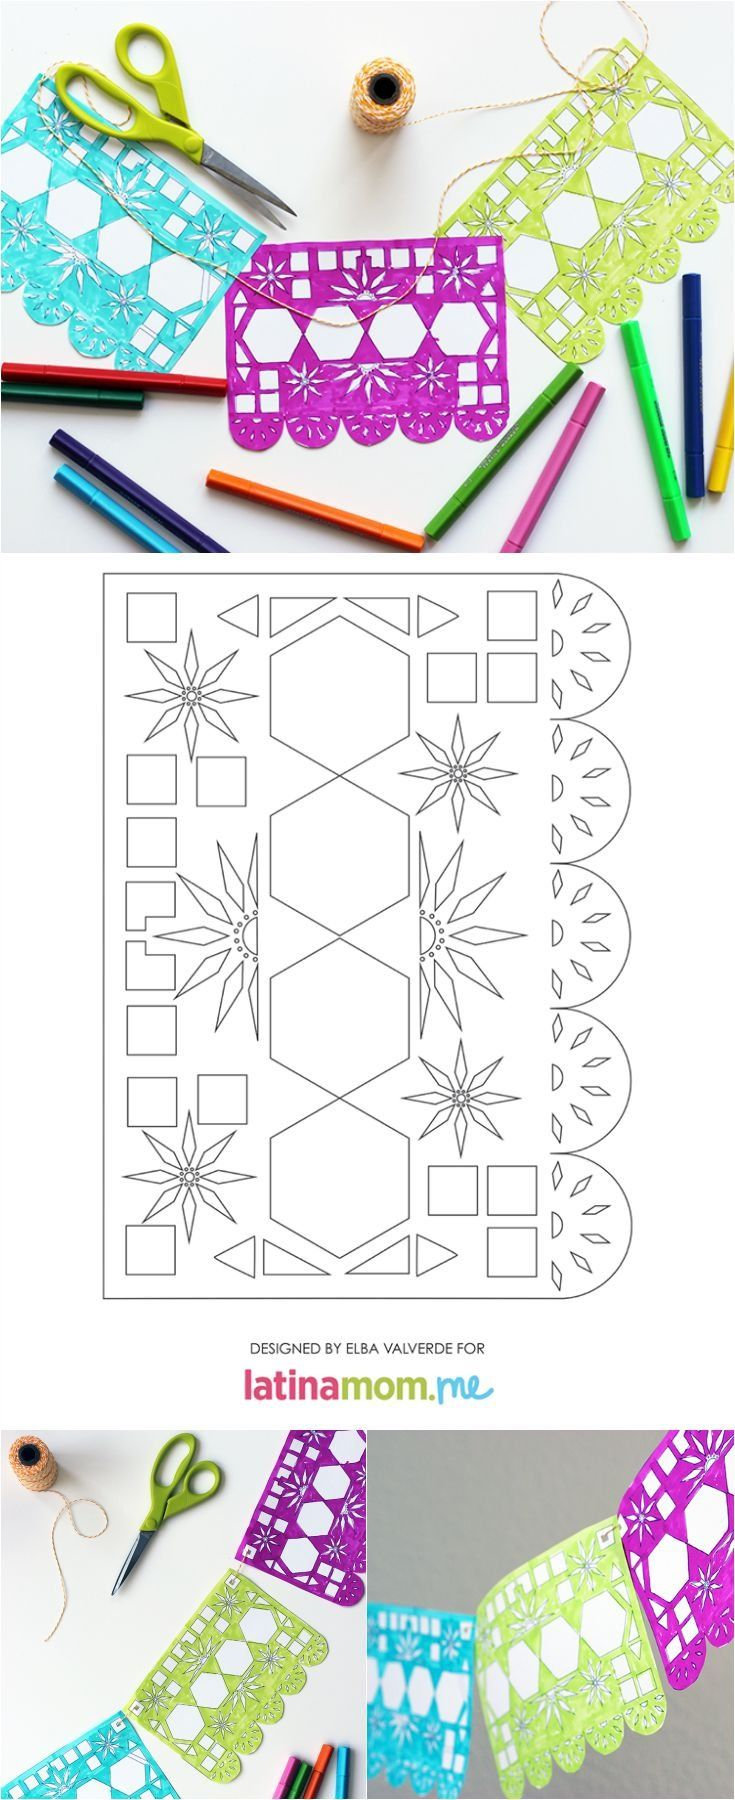 photograph about Papel Picado Templates Printable named Working day of the Lifeless Printable Papel Picado No cost Printables